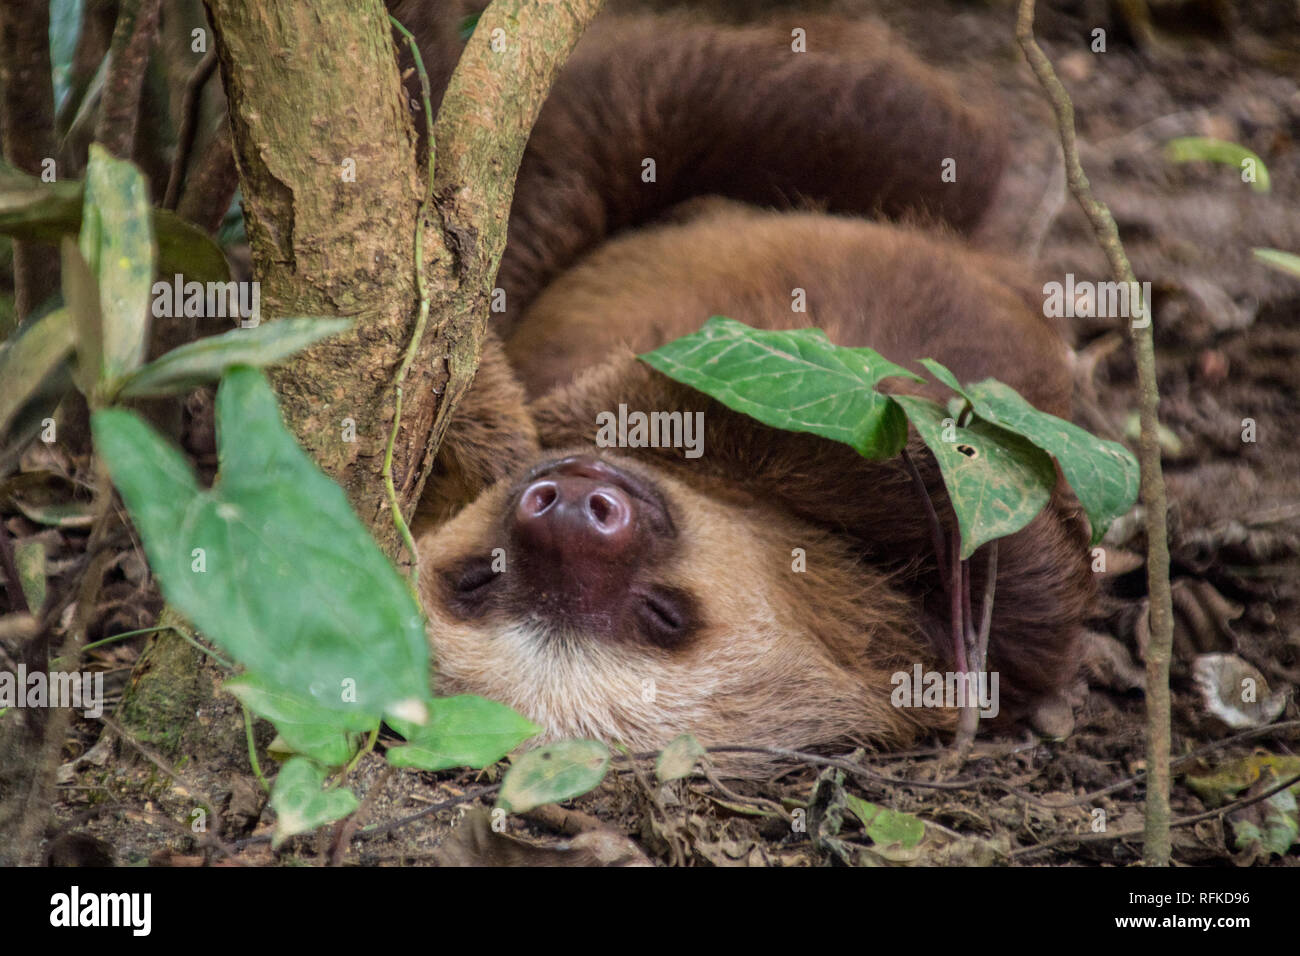 A nice portrait of a adorable rescued sloth sleeping on the ground under a tree. At Jaguar Rescue Center, Puerto Viejo, Costa Rica - Stock Image